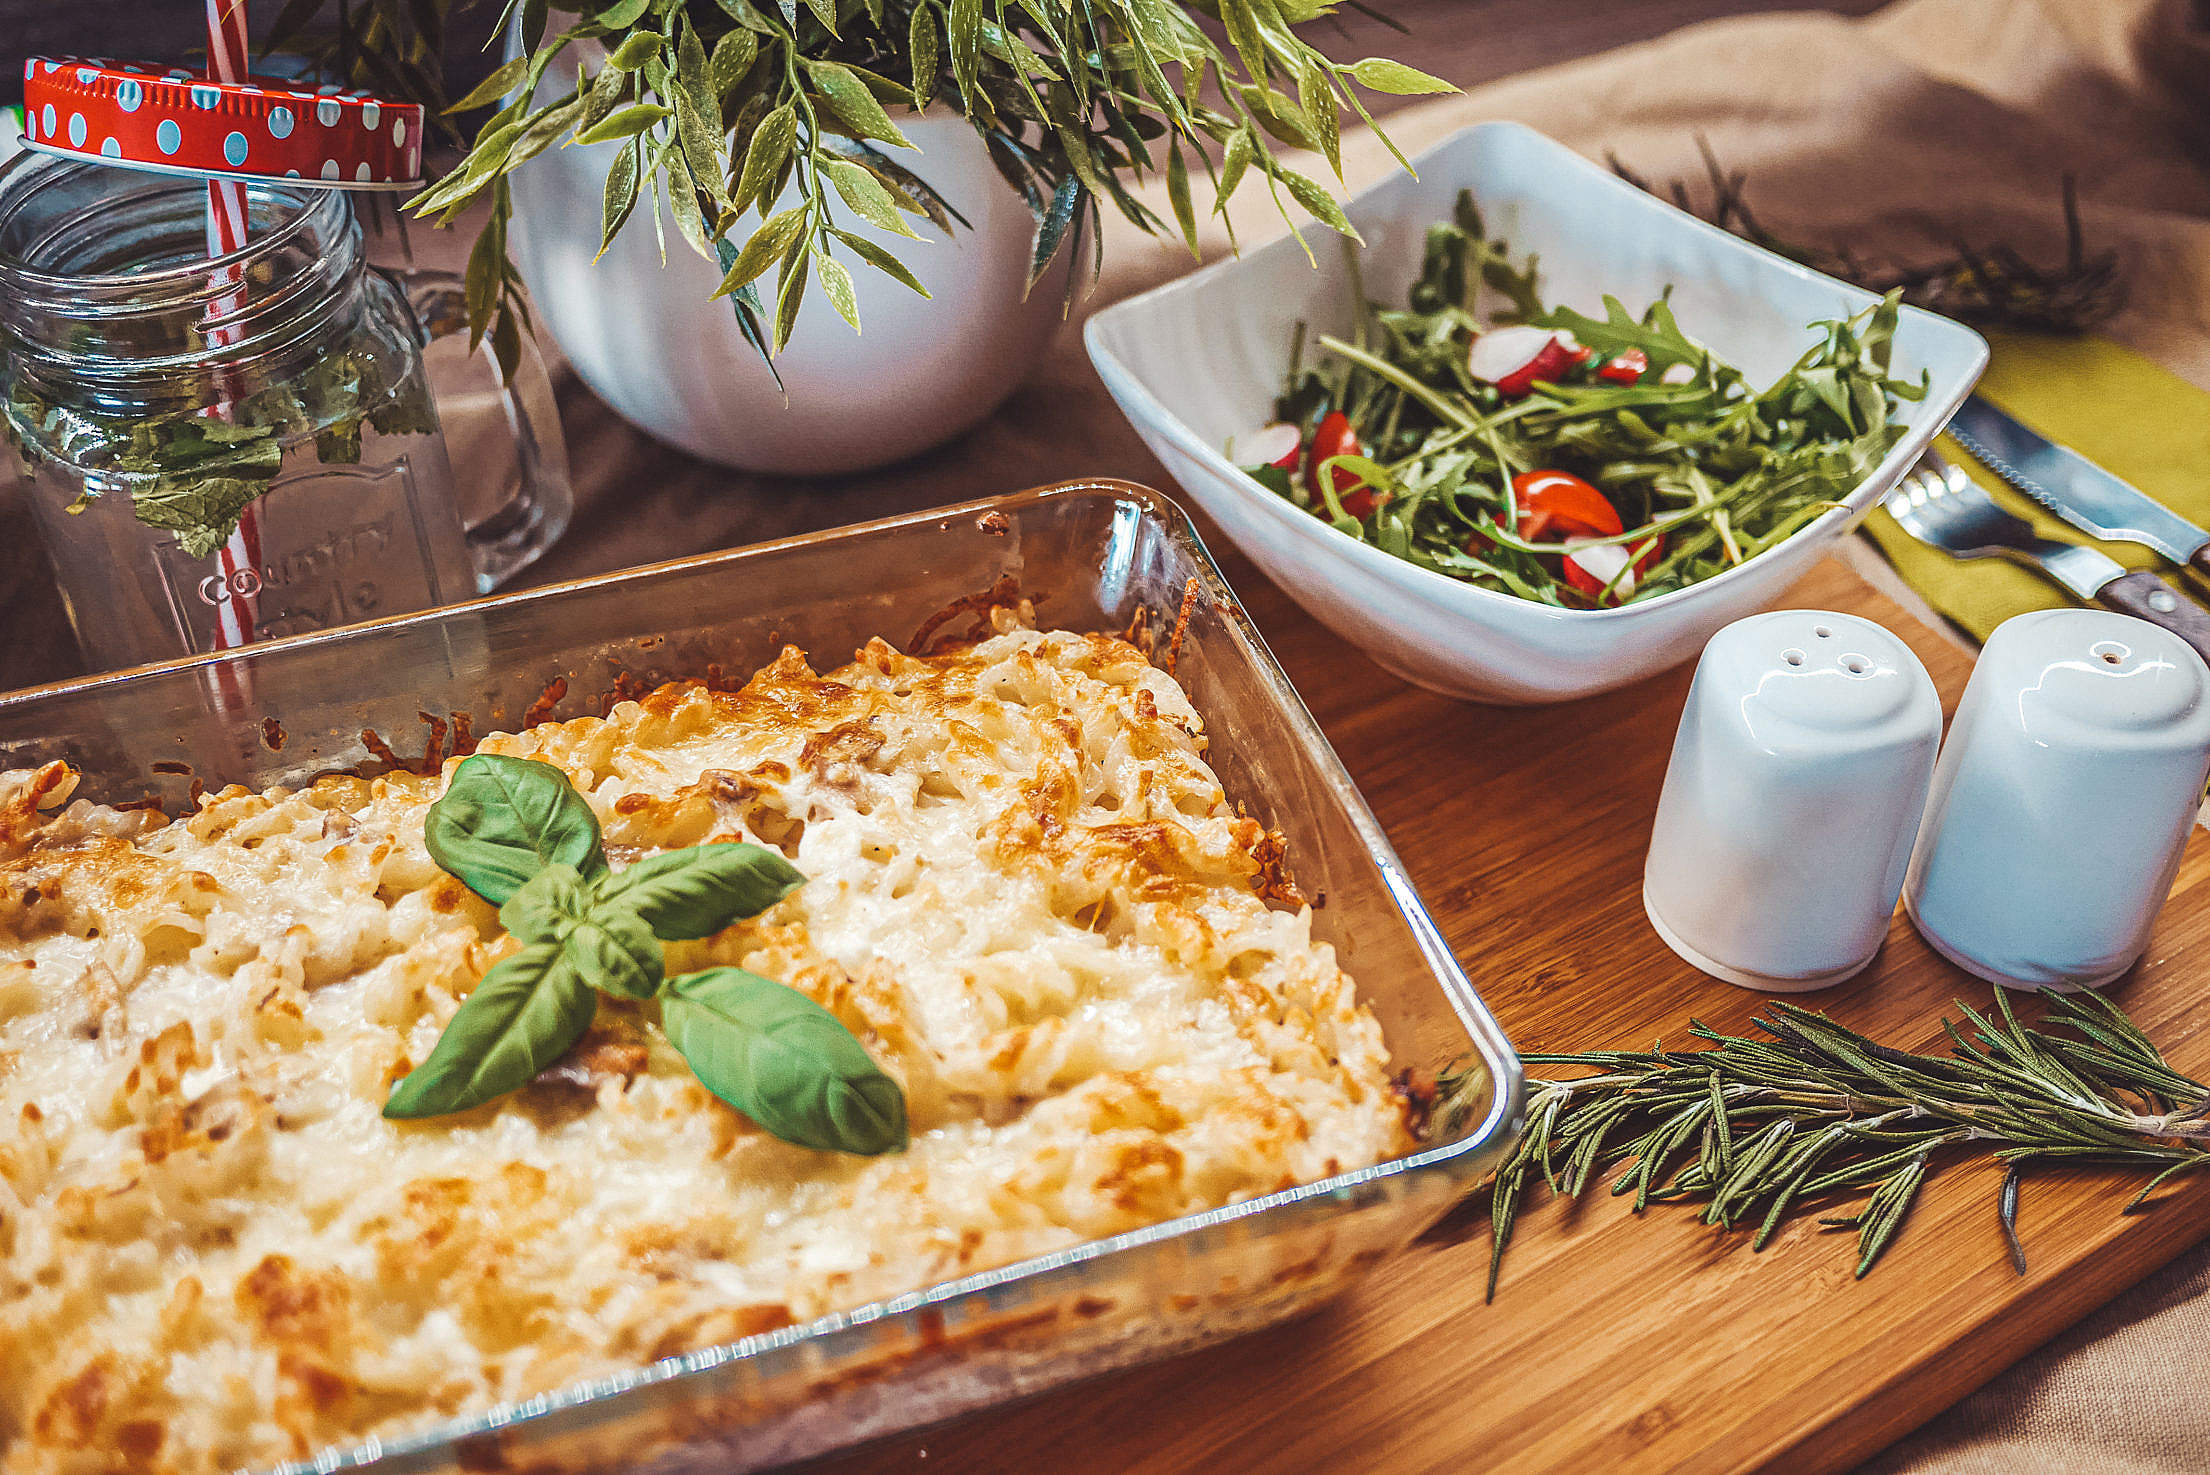 Baked Tuna Pasta Served with a Vegetable Salad Free Stock Photo